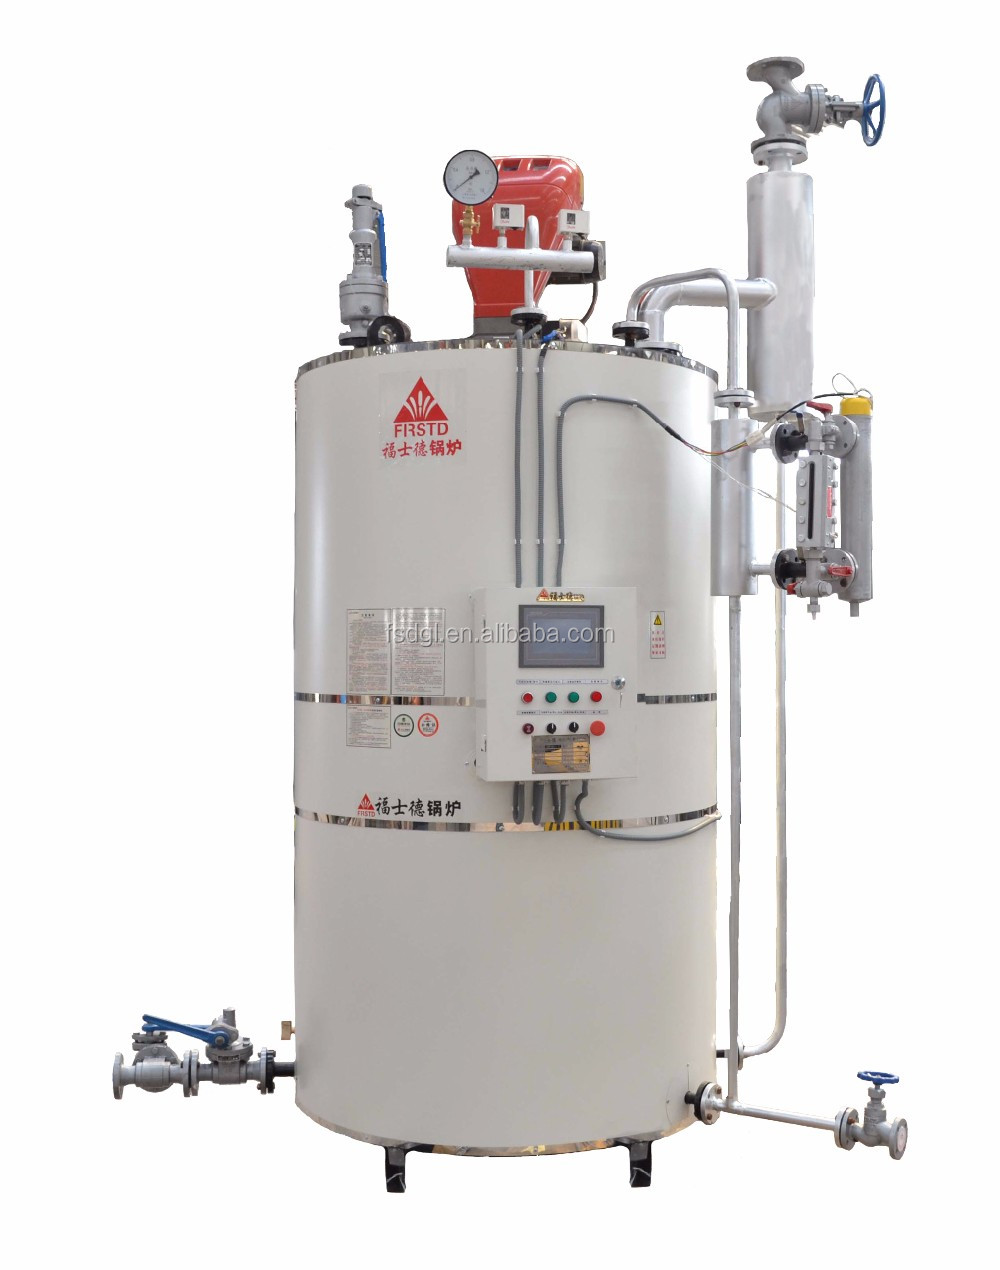 China gas parts for gas boilers wholesale 🇨🇳 - Alibaba